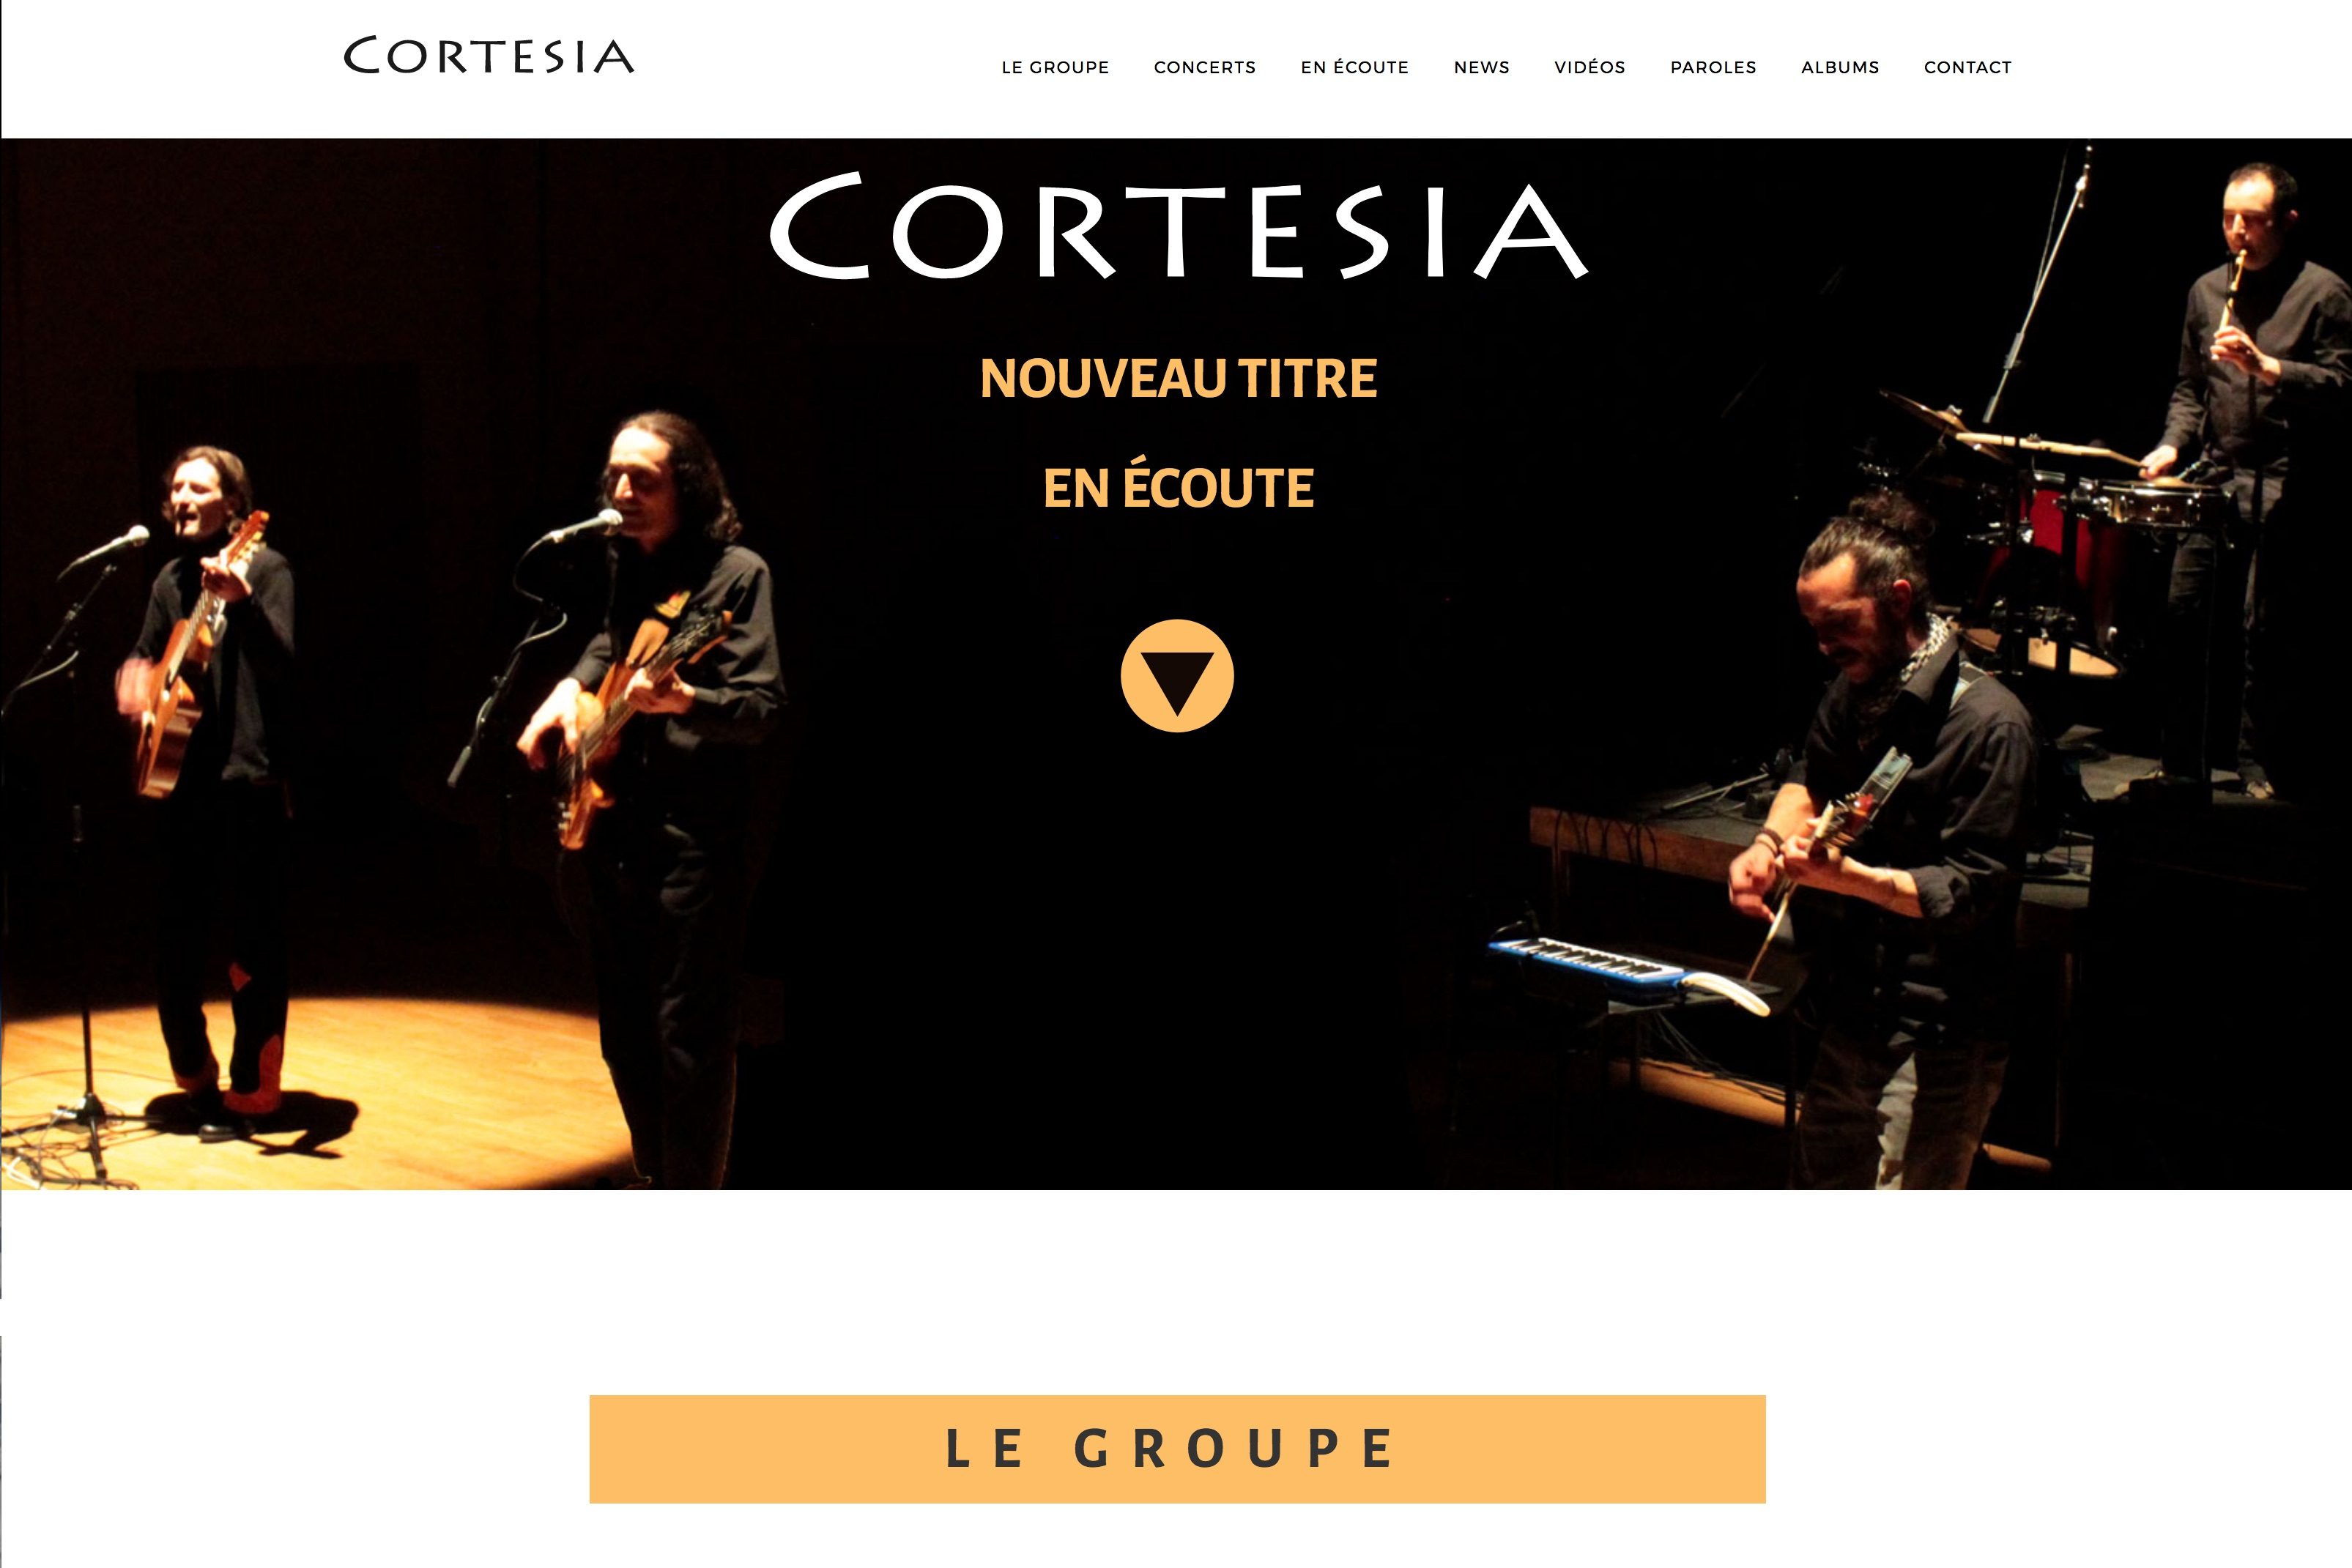 création de site internet : Cortesia.fr par Black Virgin. www.blackvirgin.fr